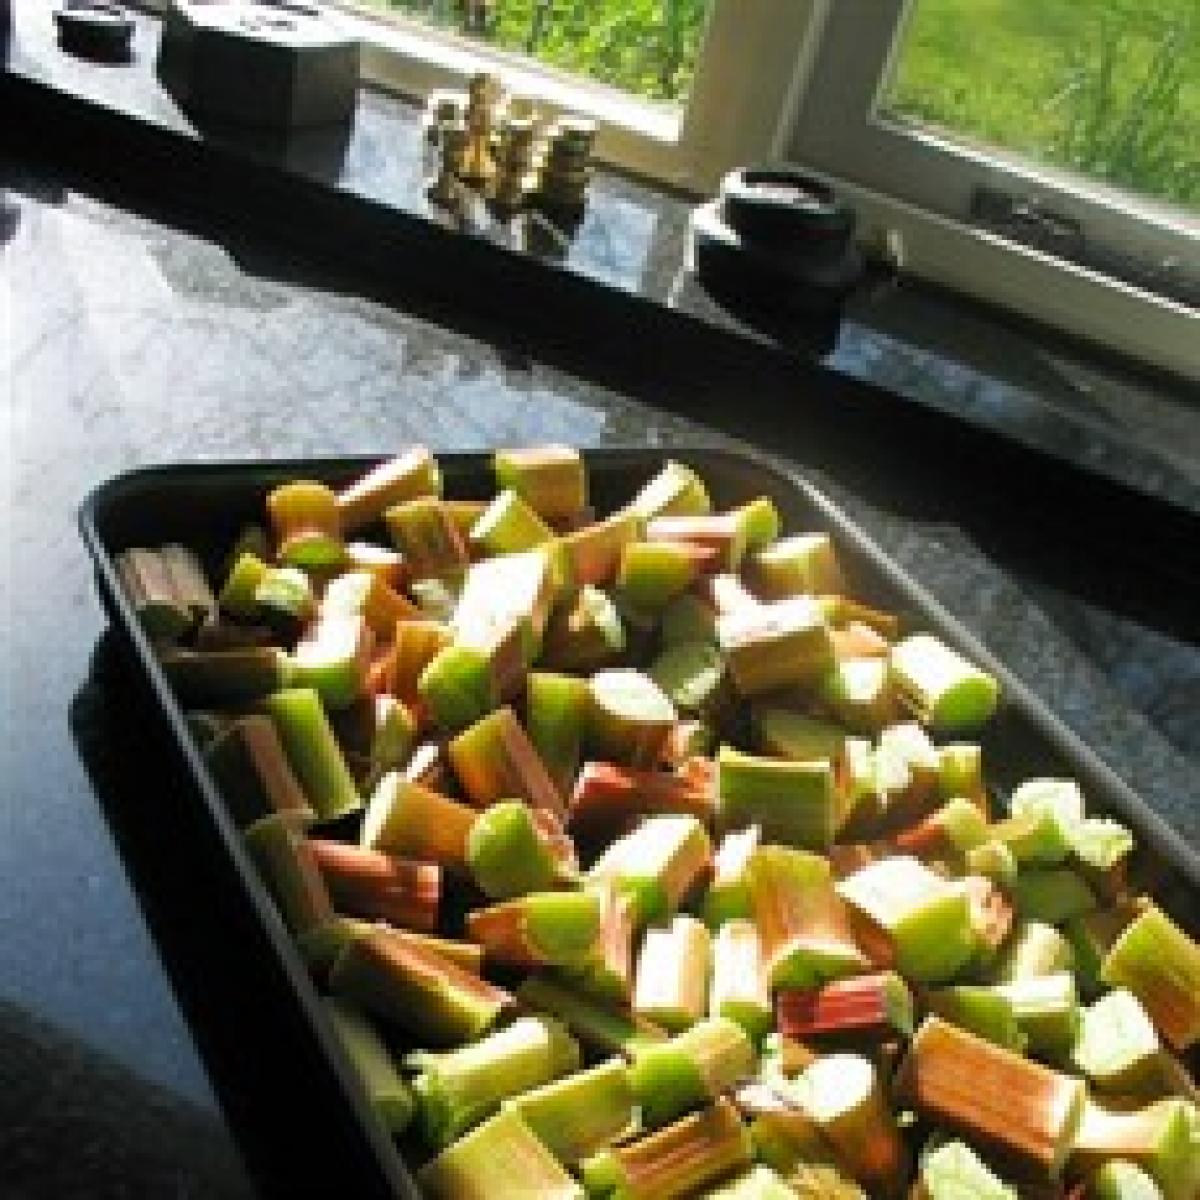 A picture of Delia's Rhubarb Compôte recipe